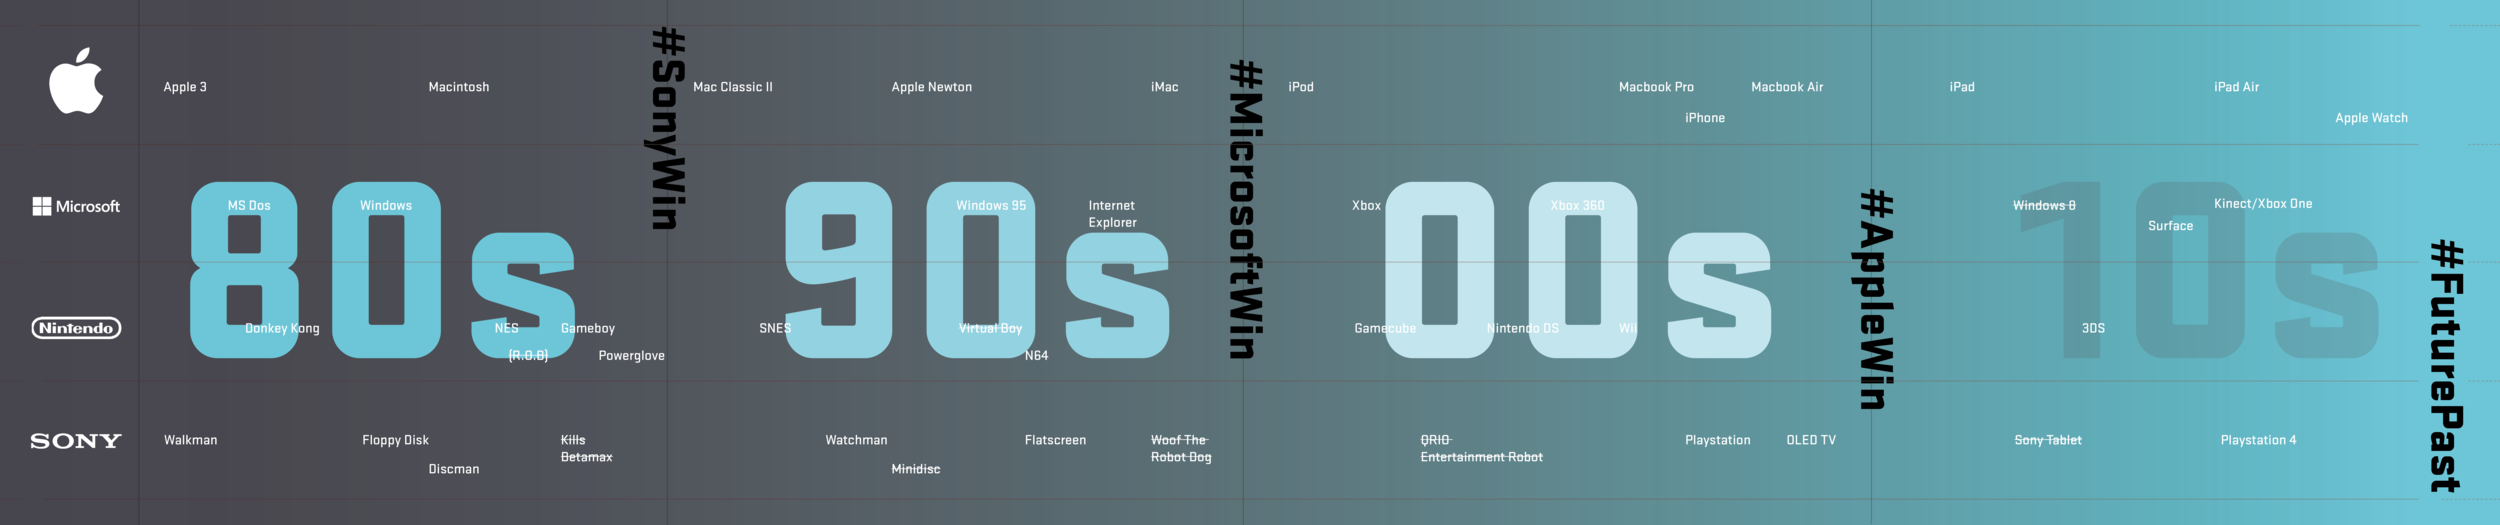 Timeline Infographic of Past Tech Wins and Failures